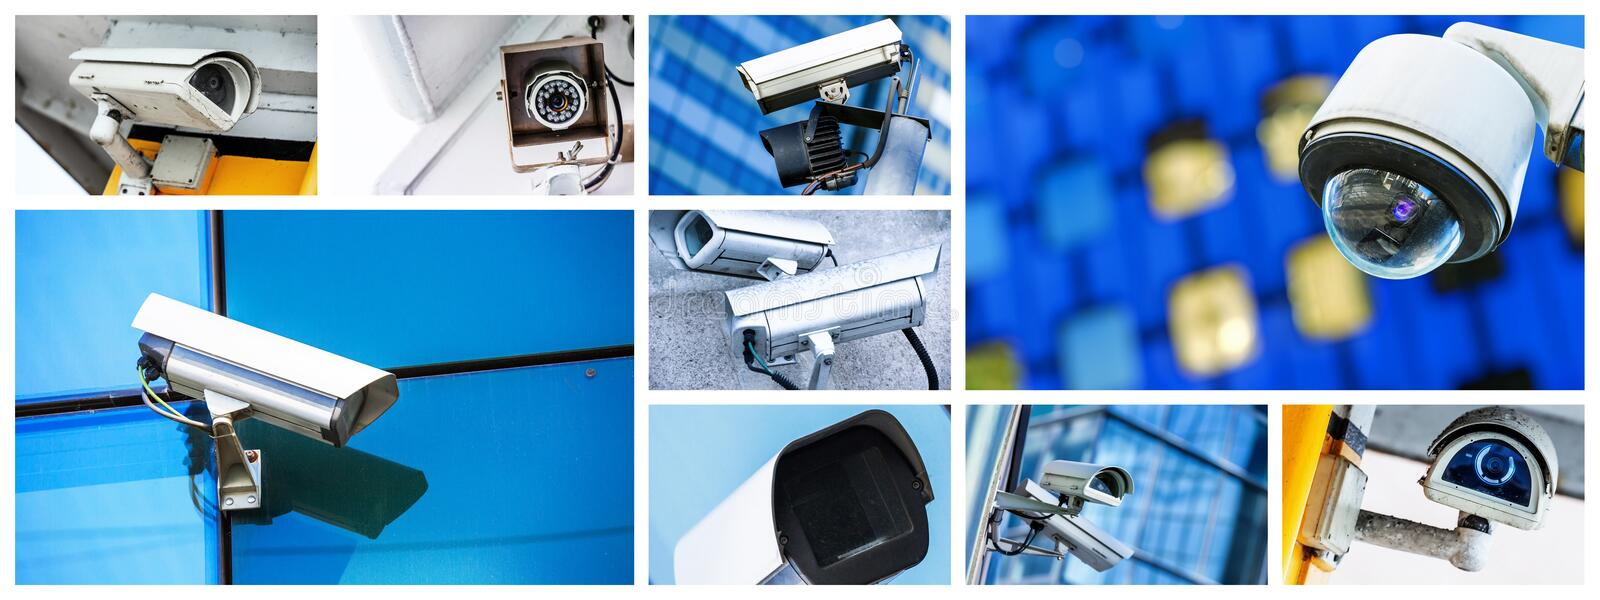 Panoramic collage of security CCTV camera or surveillance system stock photo